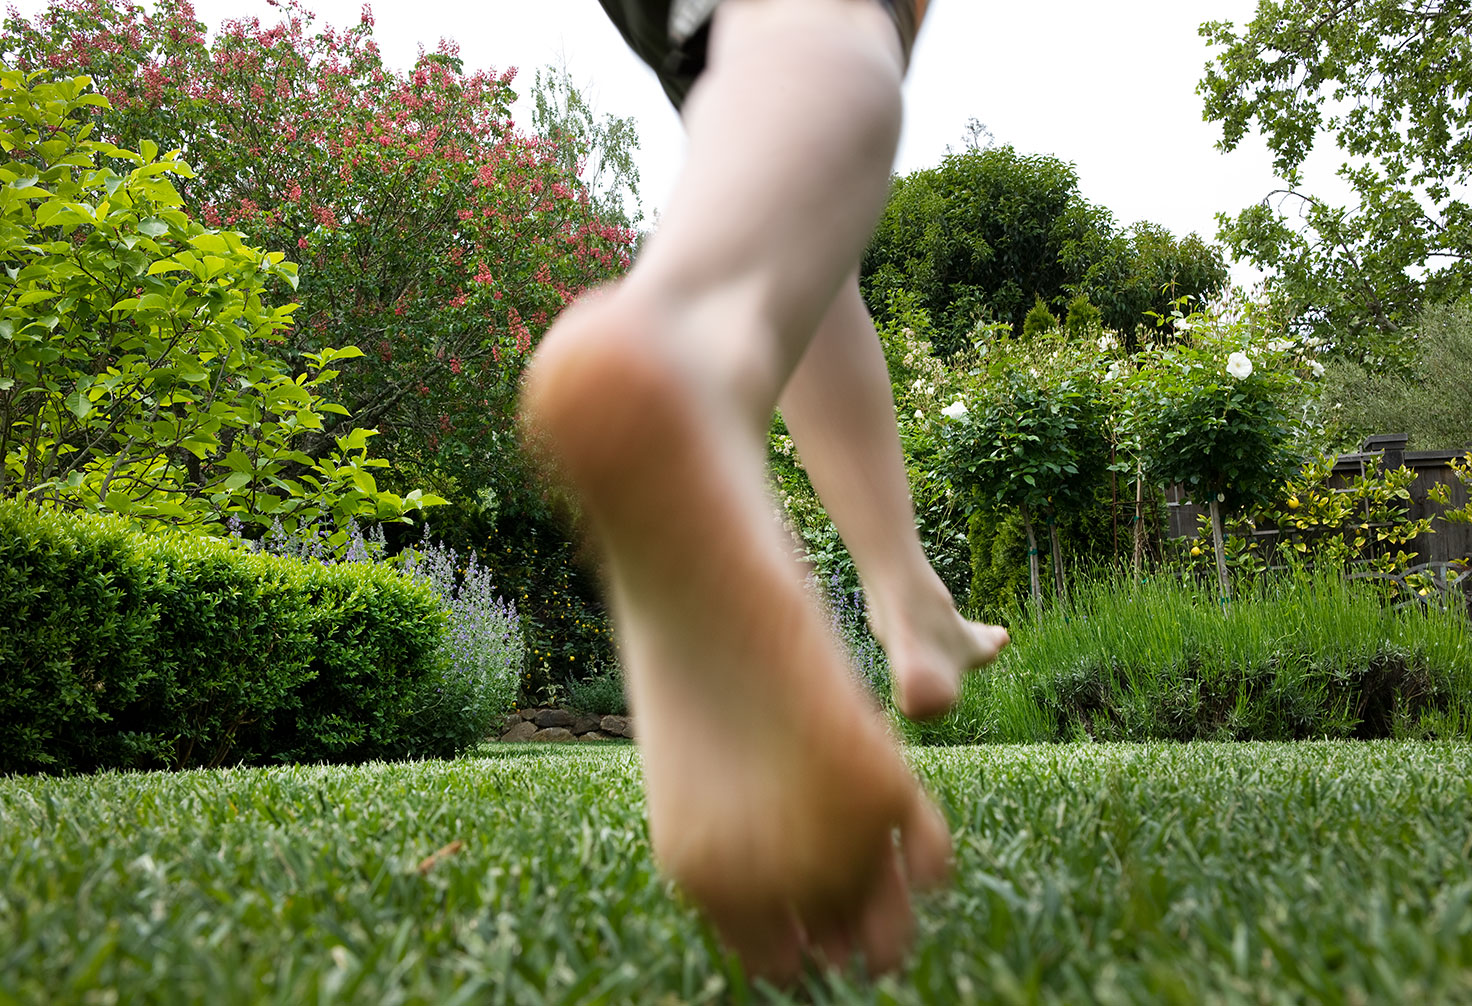 boy-running-in-garden